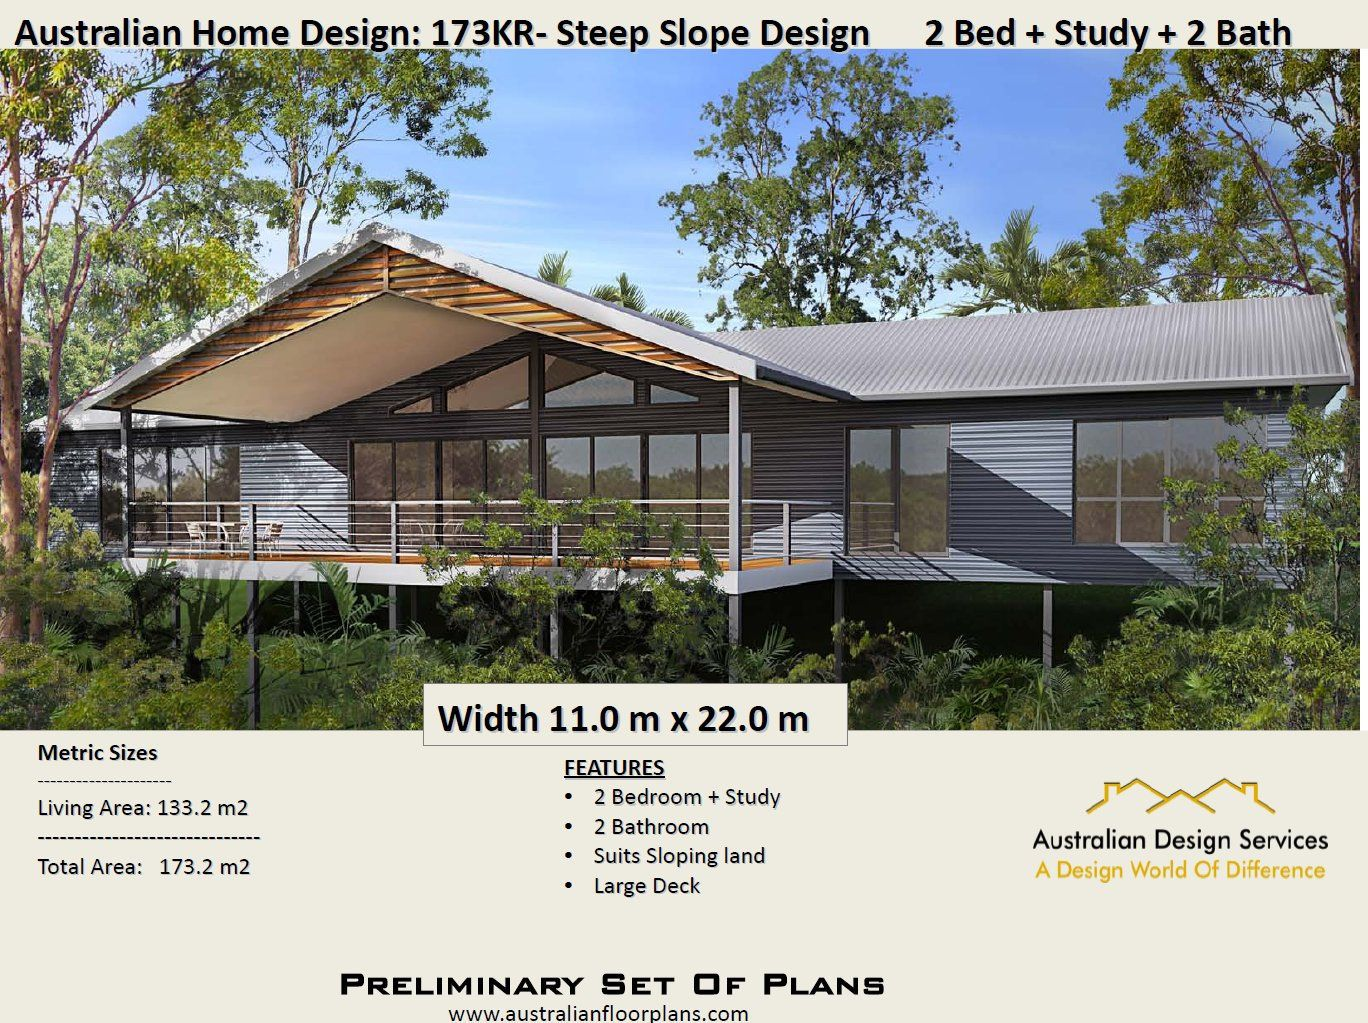 Australian 2 Bed Study 2 Bath Steep Slope House Design House Plans Australia Australian House Plans Kit Homes Australia